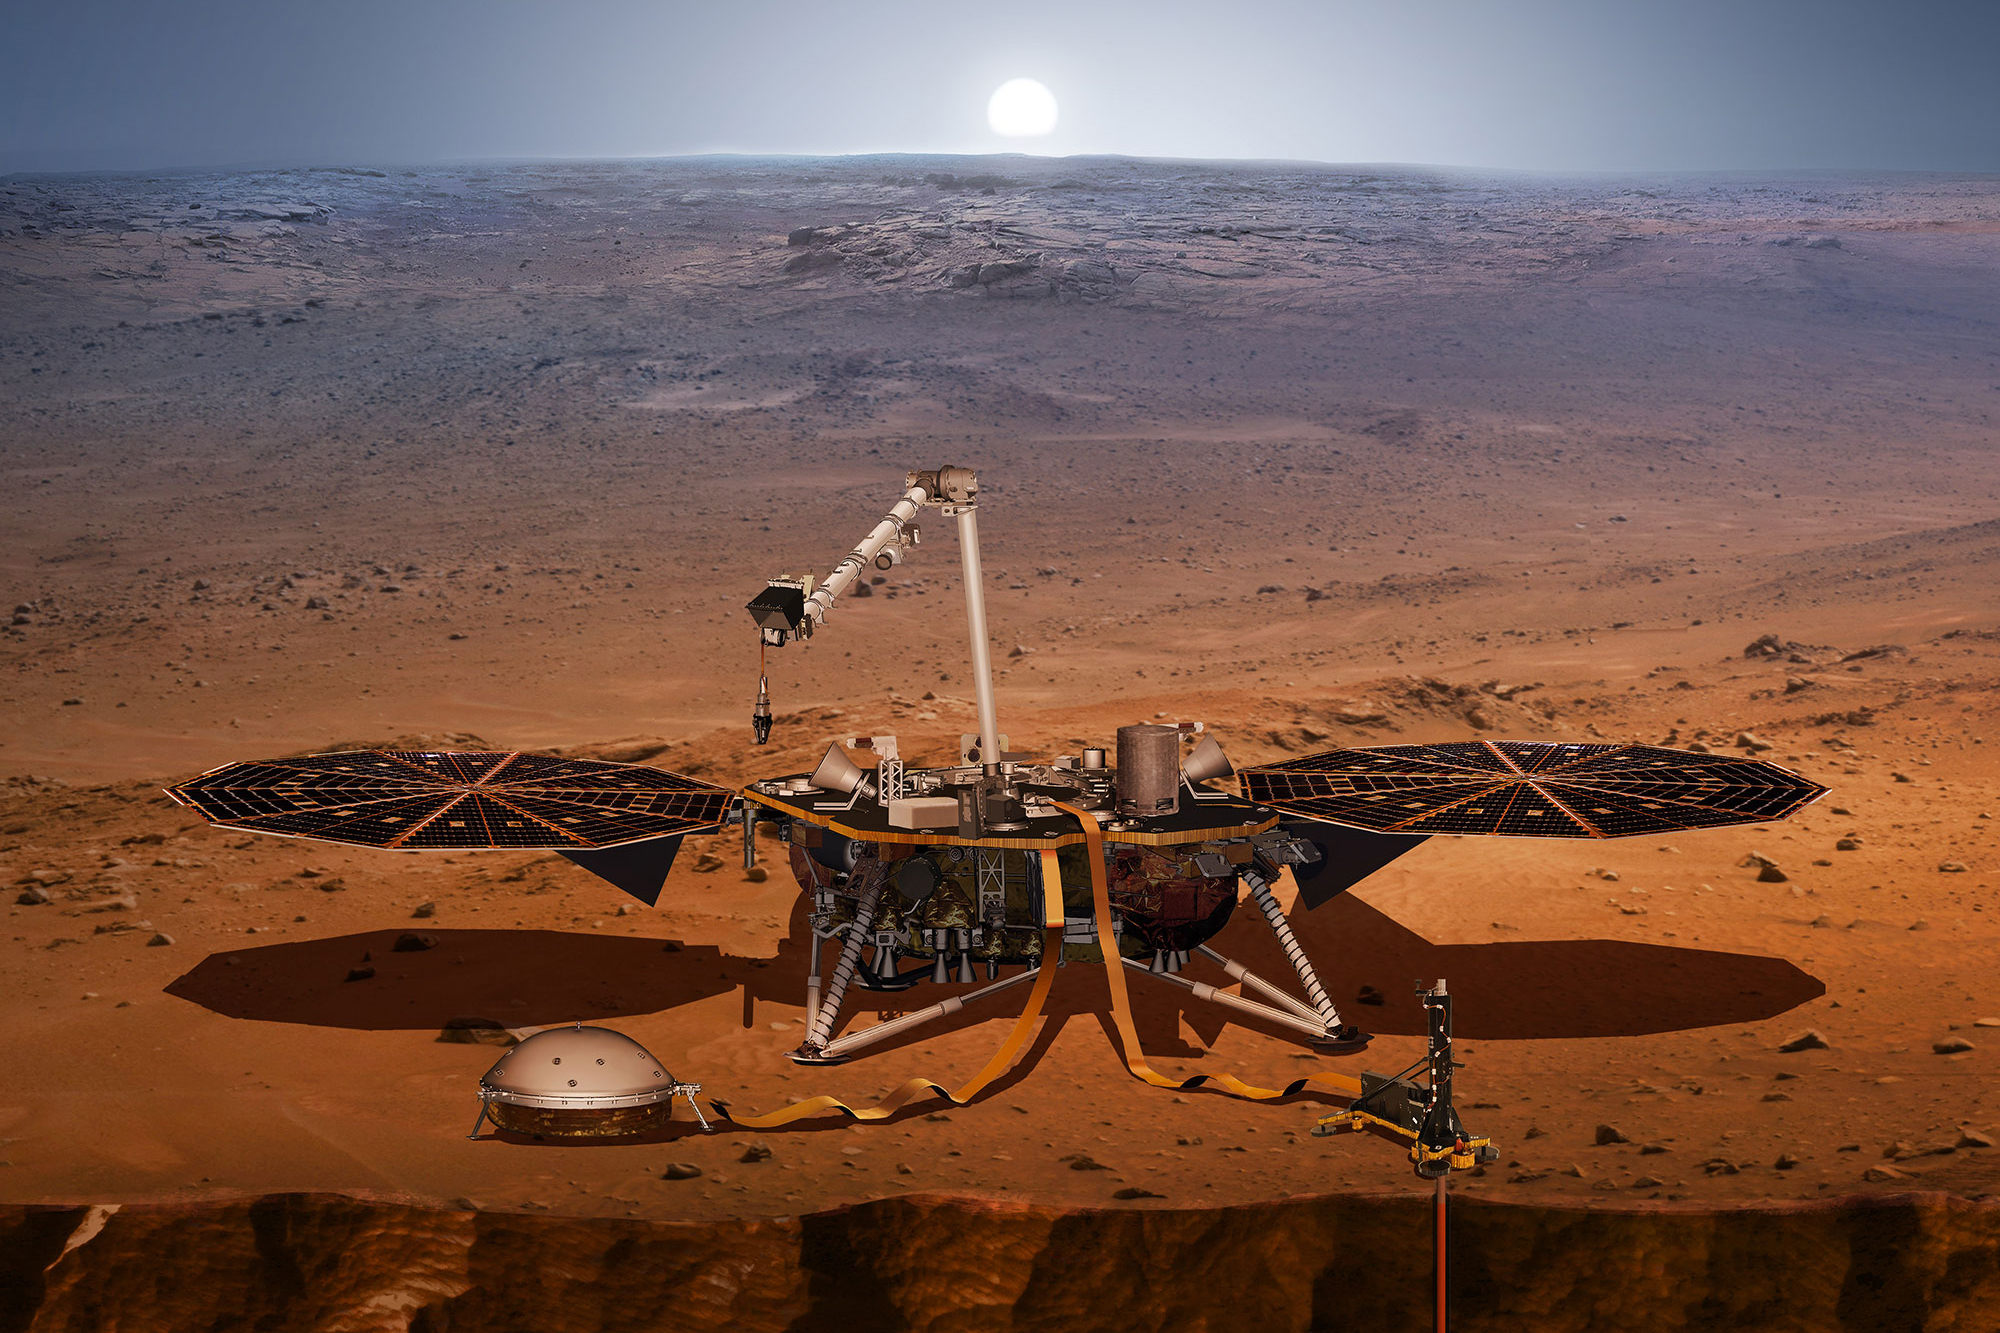 <p>An artist's rendering of what the InSight lander might look like on Mars.</p>